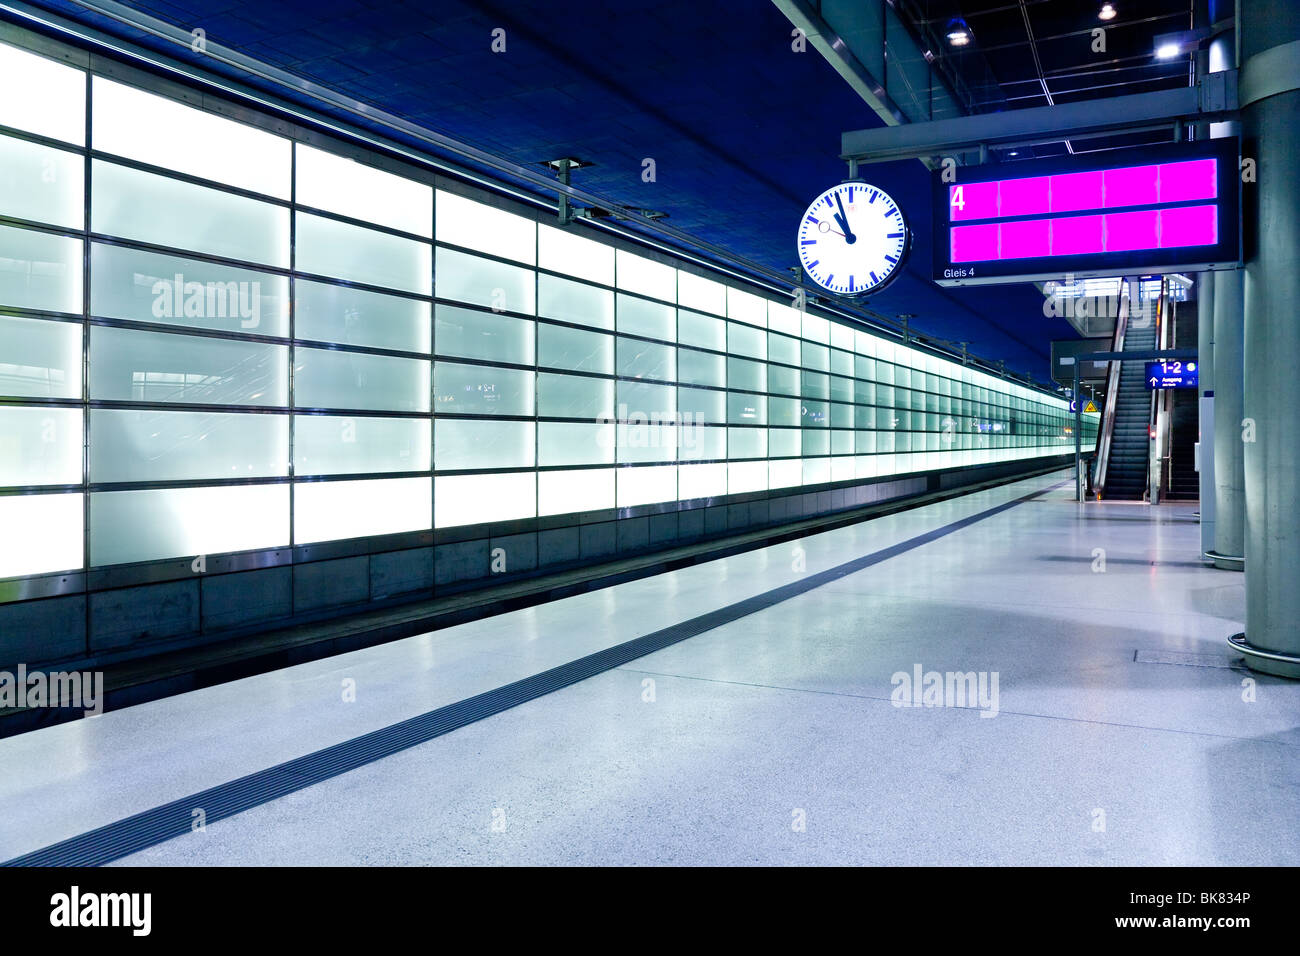 Europe, Germany, Berlin, modern train station platform - Stock Image